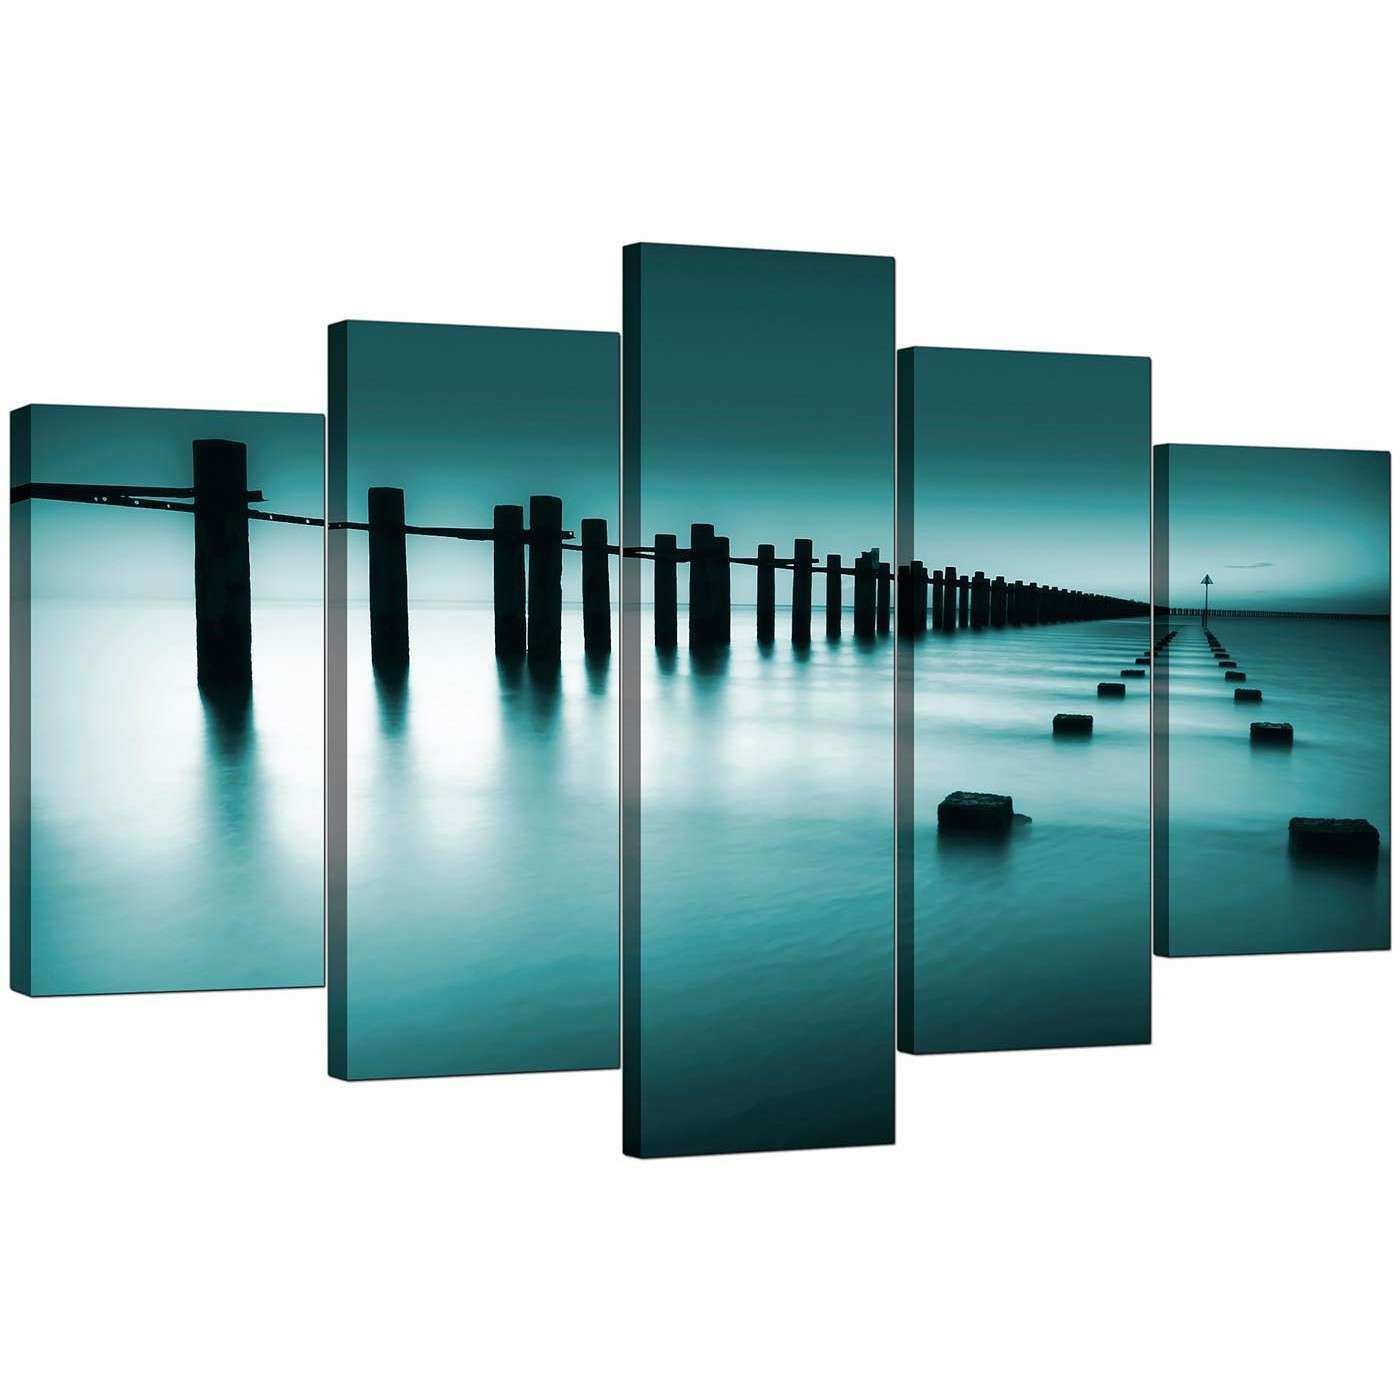 Extra Sea Canvas Wall Art Five Panel in Teal